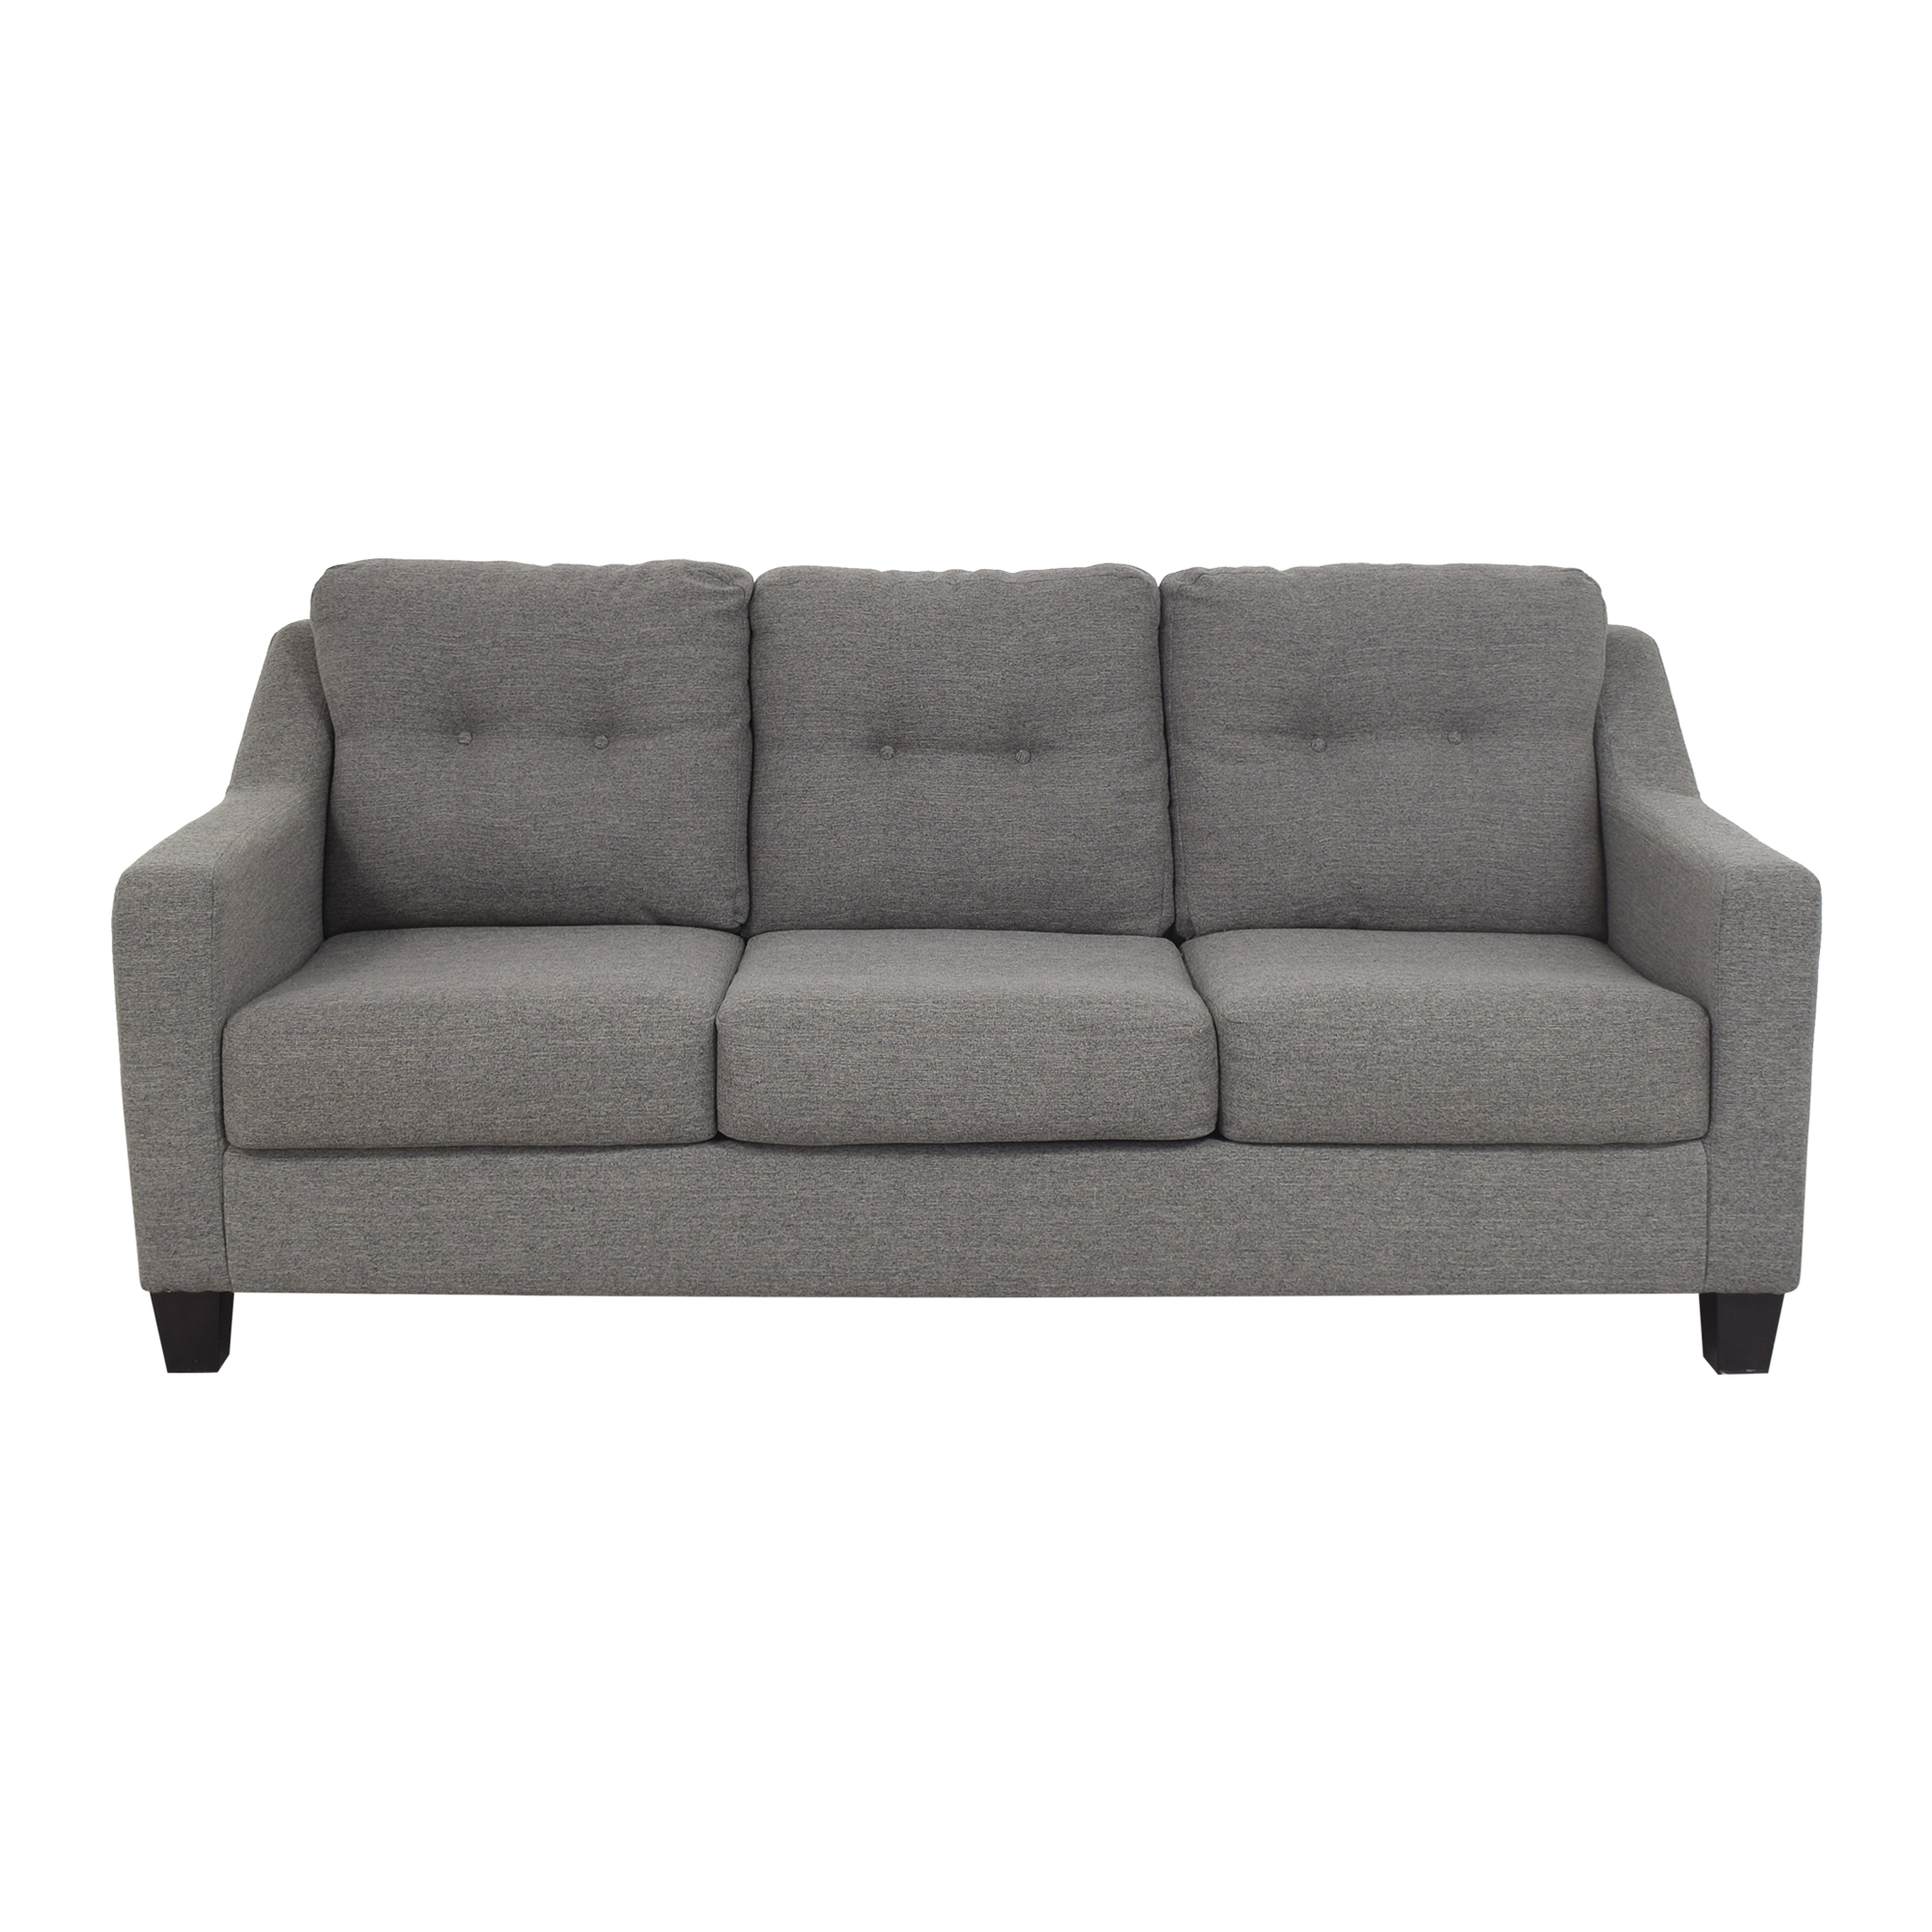 shop Ashley Furniture Ashley Furniture Button Tufted Sofa online